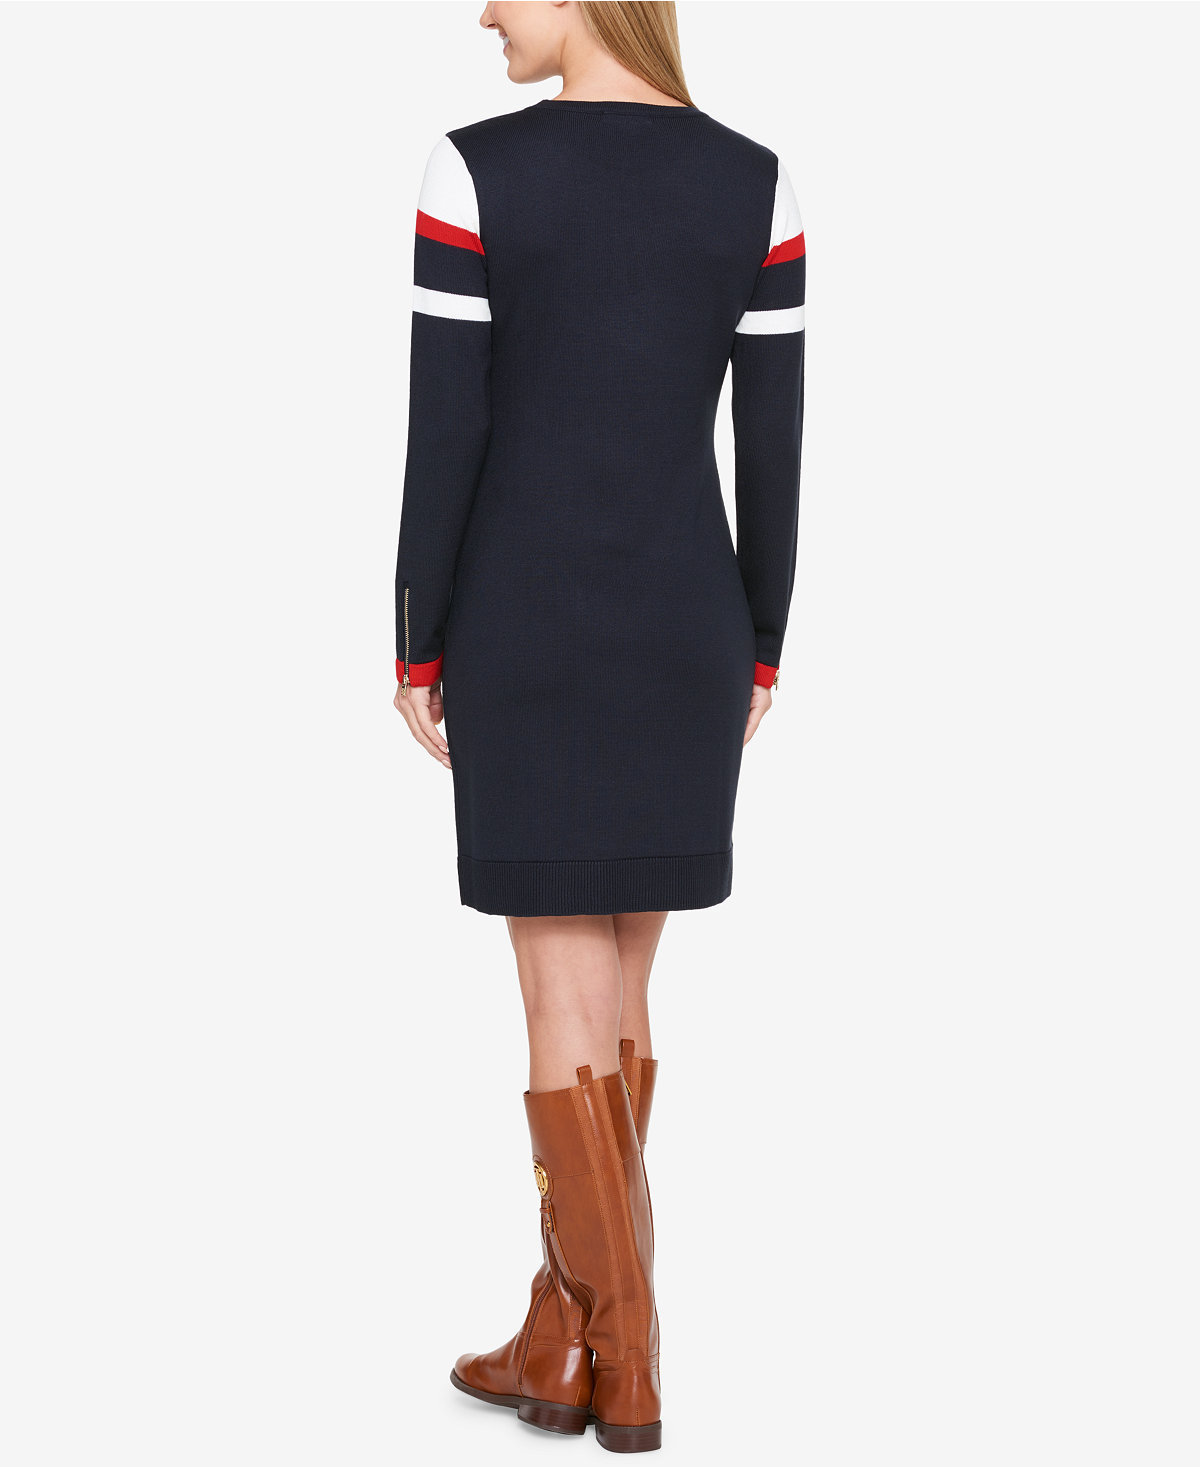 【Tommy Hilfiger 】ニットワンピ EColorblocked Sweater Dress